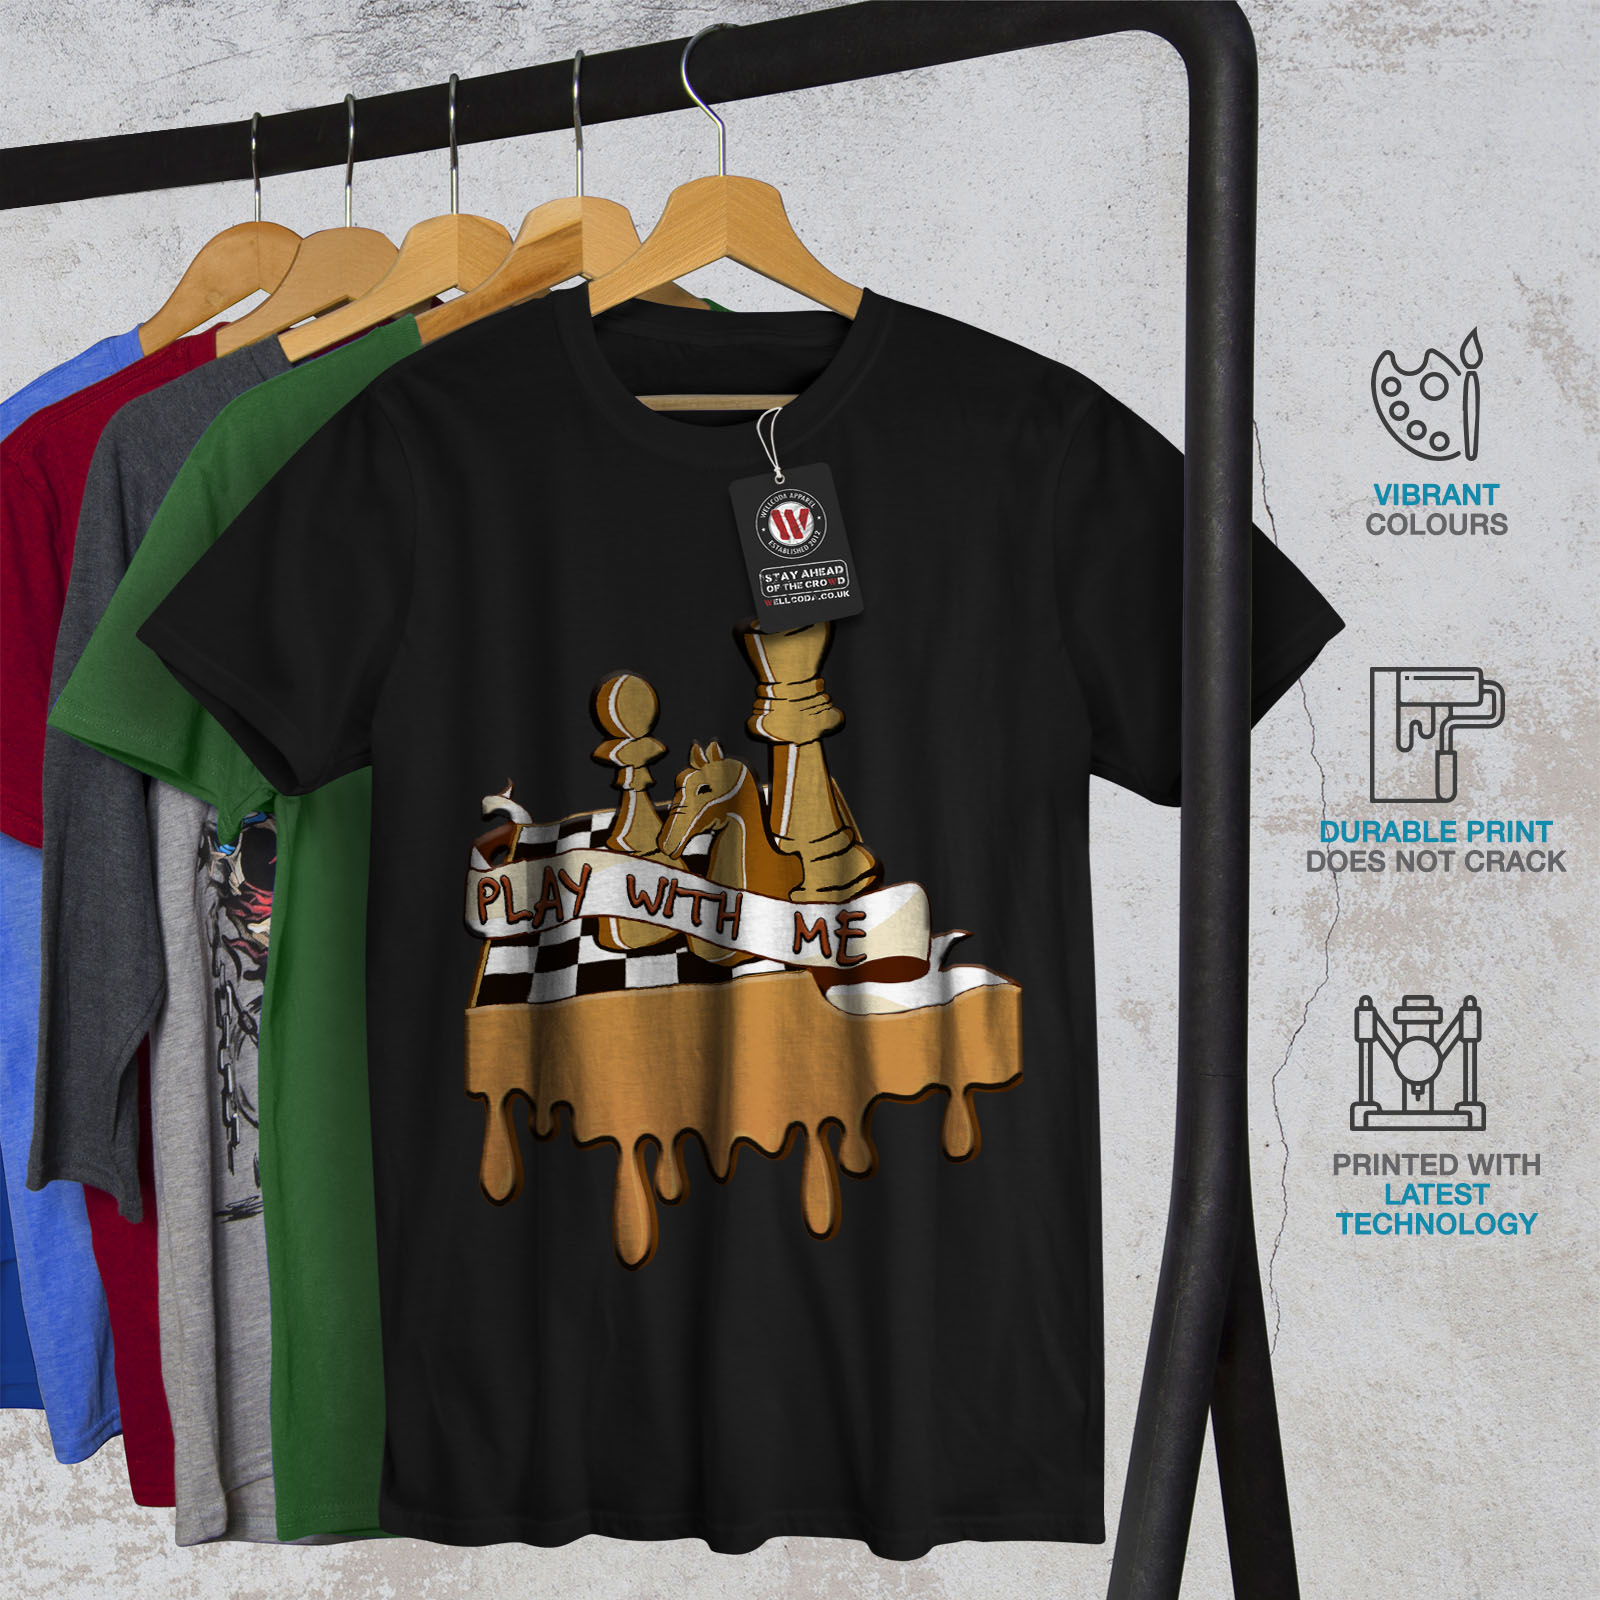 fae8b00d9 Wellcoda Play Chess With Me Mens T-shirt, Game Graphic Design ...